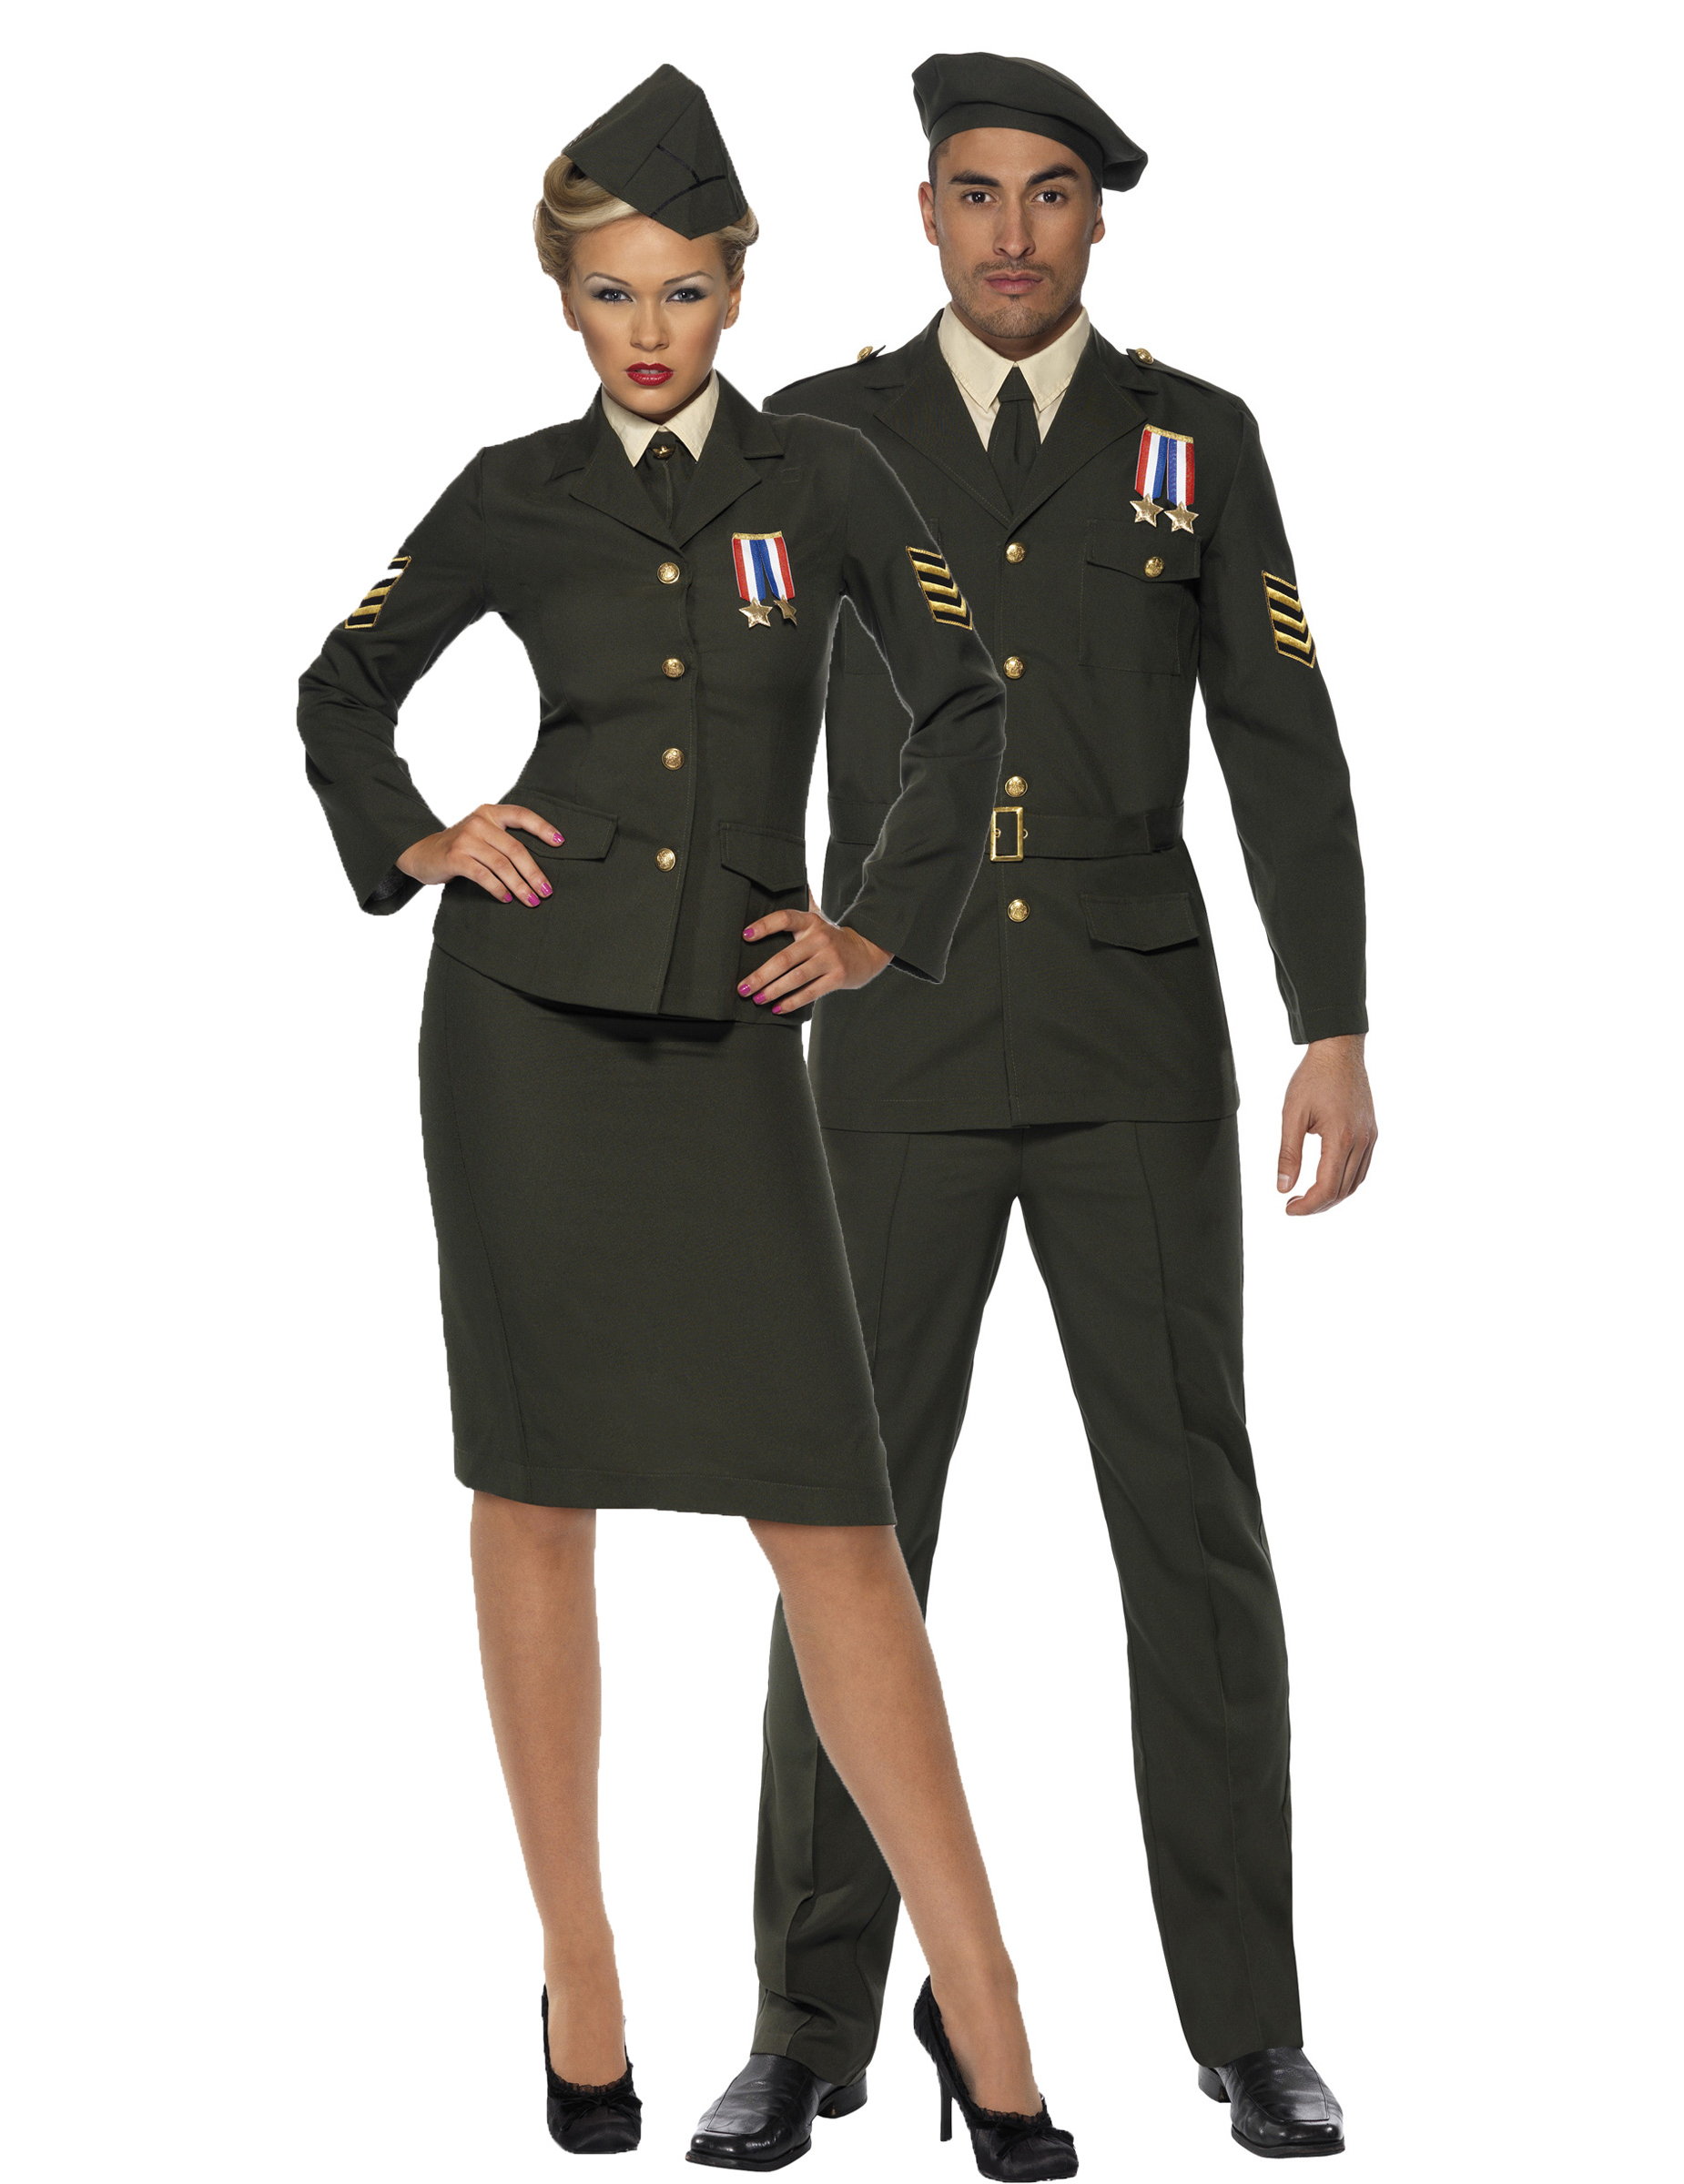 D guisement couple officiers militaires deguise toi achat de d guisements couples - Deguisement couple halloween ...